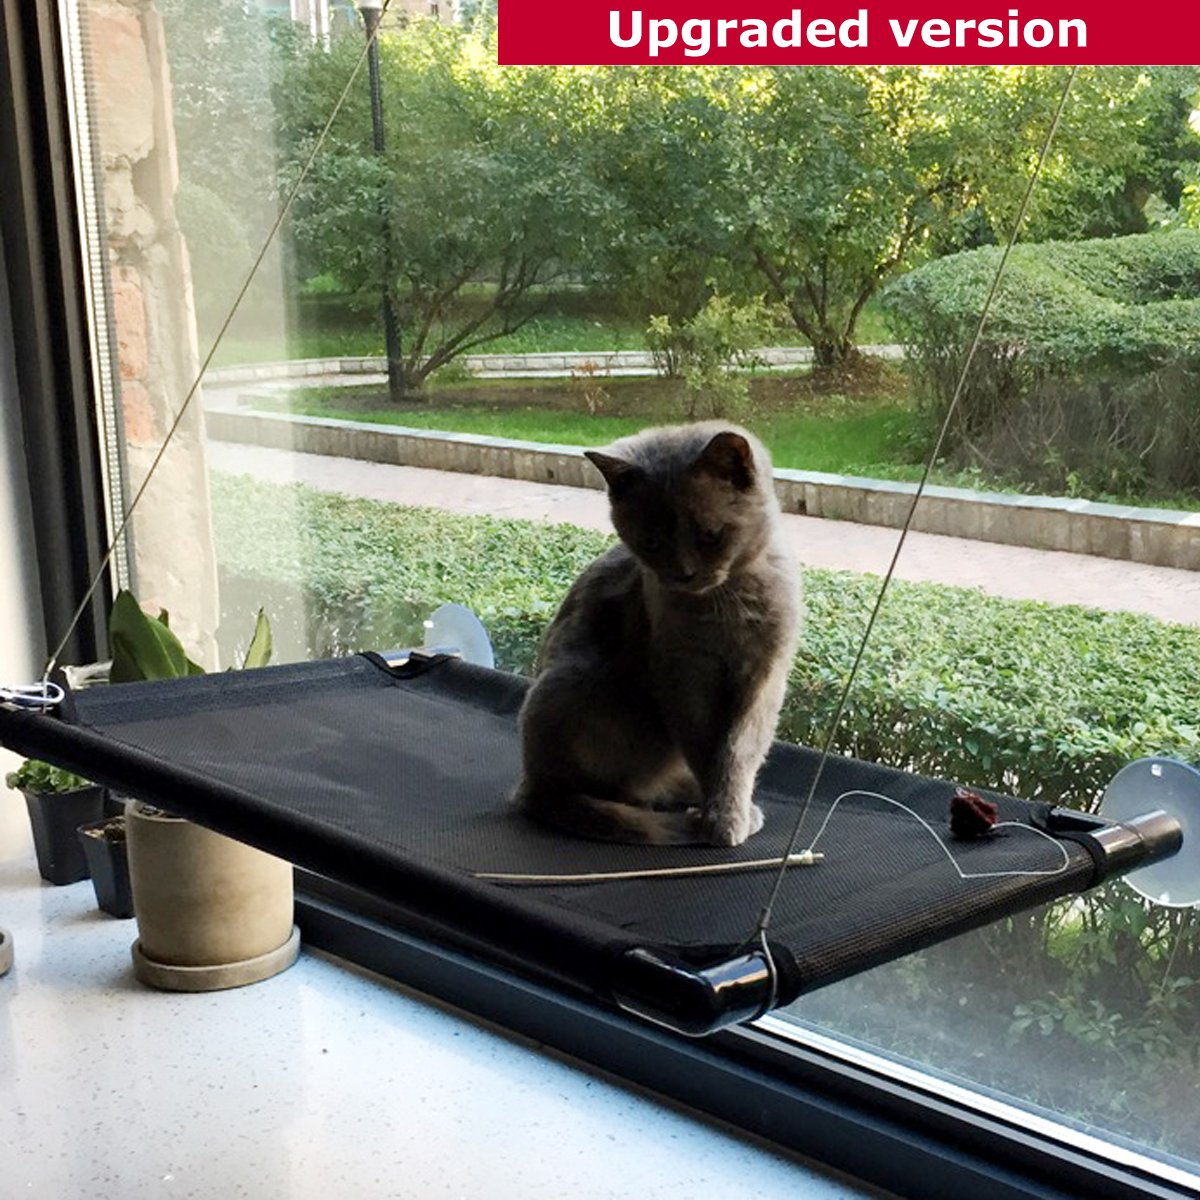 GRE1BEE Cat Window Perch Hammock Seat Cat Bed Kitty Cot Sunny Furniture Cats Perches Two Sill Mounted Animal Pets Kitten Beds Upgraded Version 4 Big Suction Cups Holds up 60lb by GRE1BEE (Image #7)